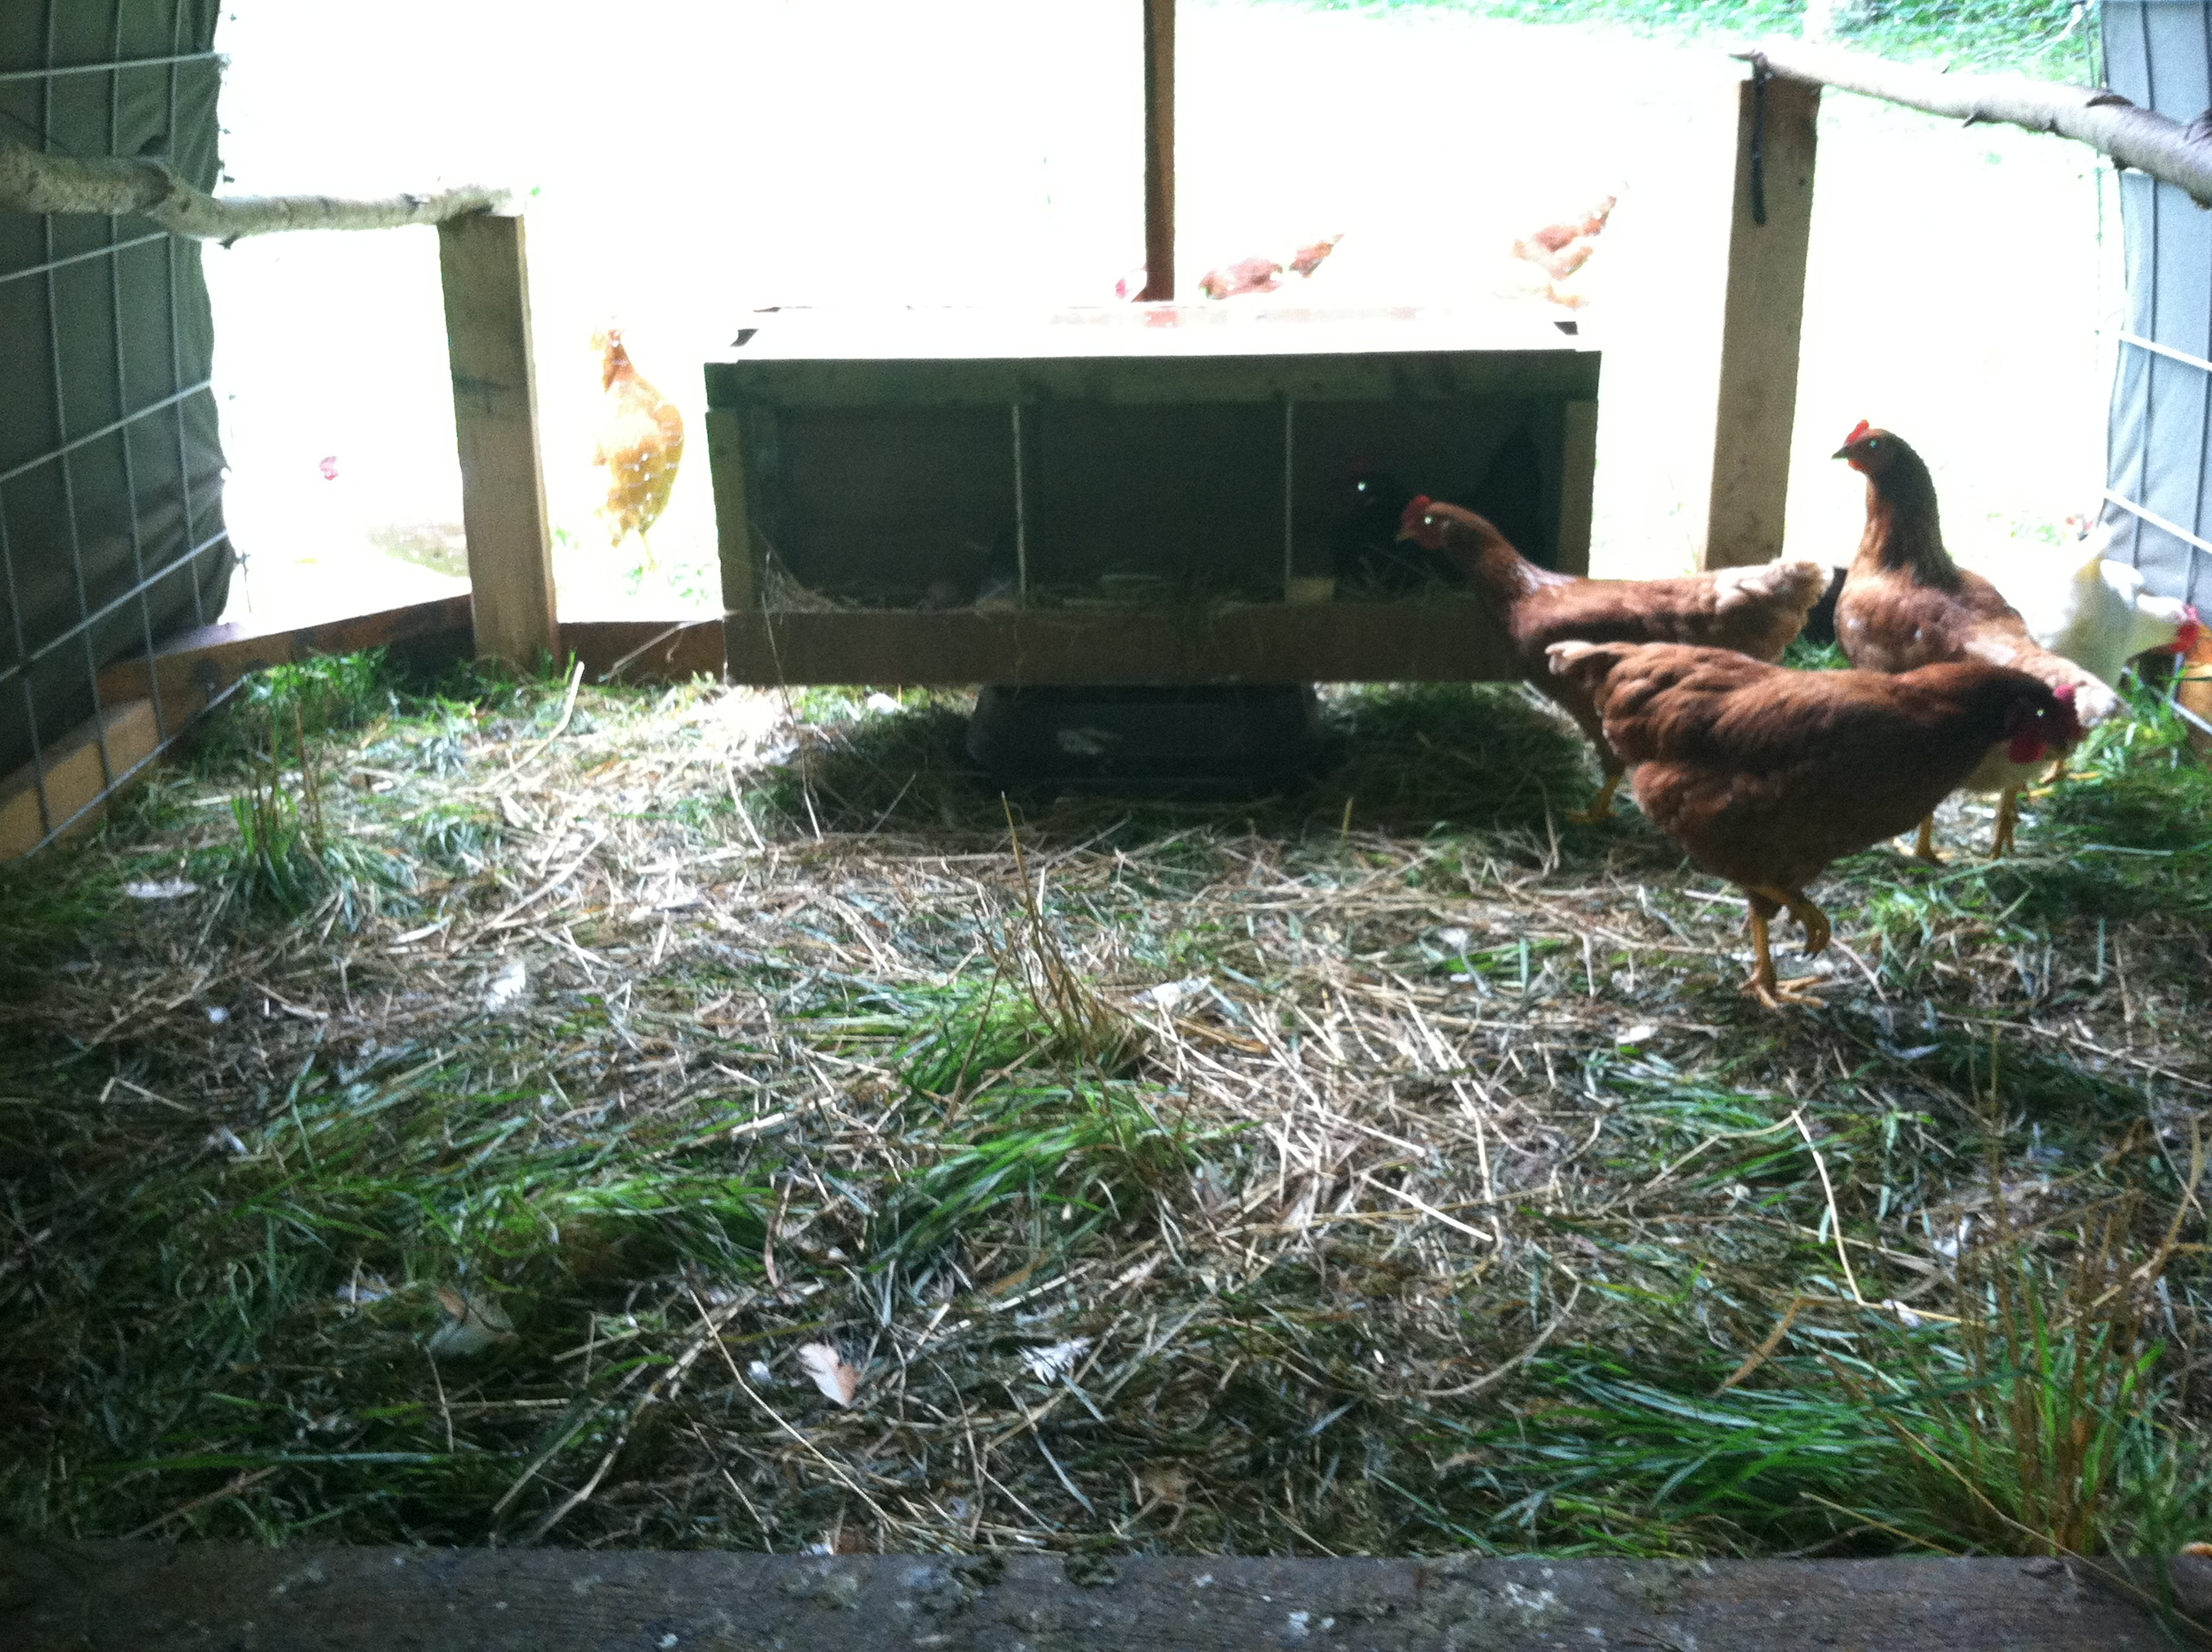 Our ladies are finally laying! I love our little flock, though now I am wishing for more hens so we can take more than 5 or 6 dozen eggs to market.